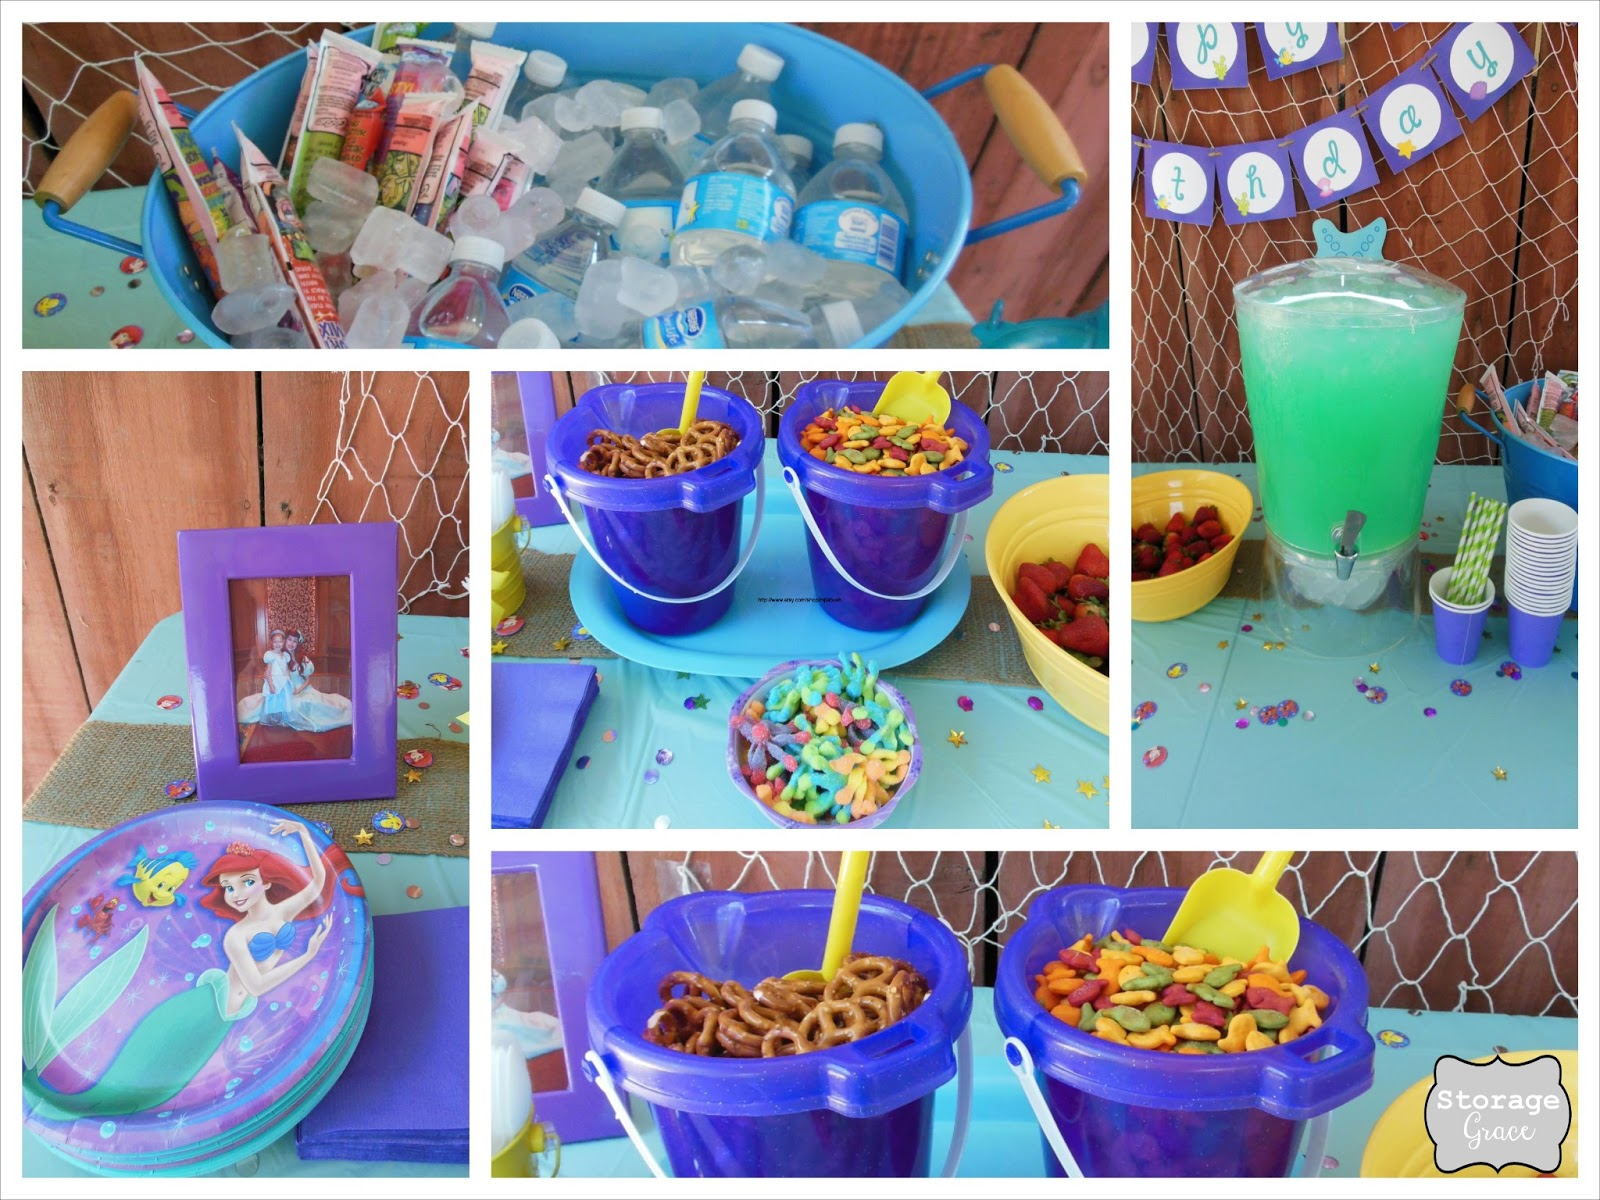 Storage grace little mermaid 4th birthday party for Ariel birthday party decoration ideas